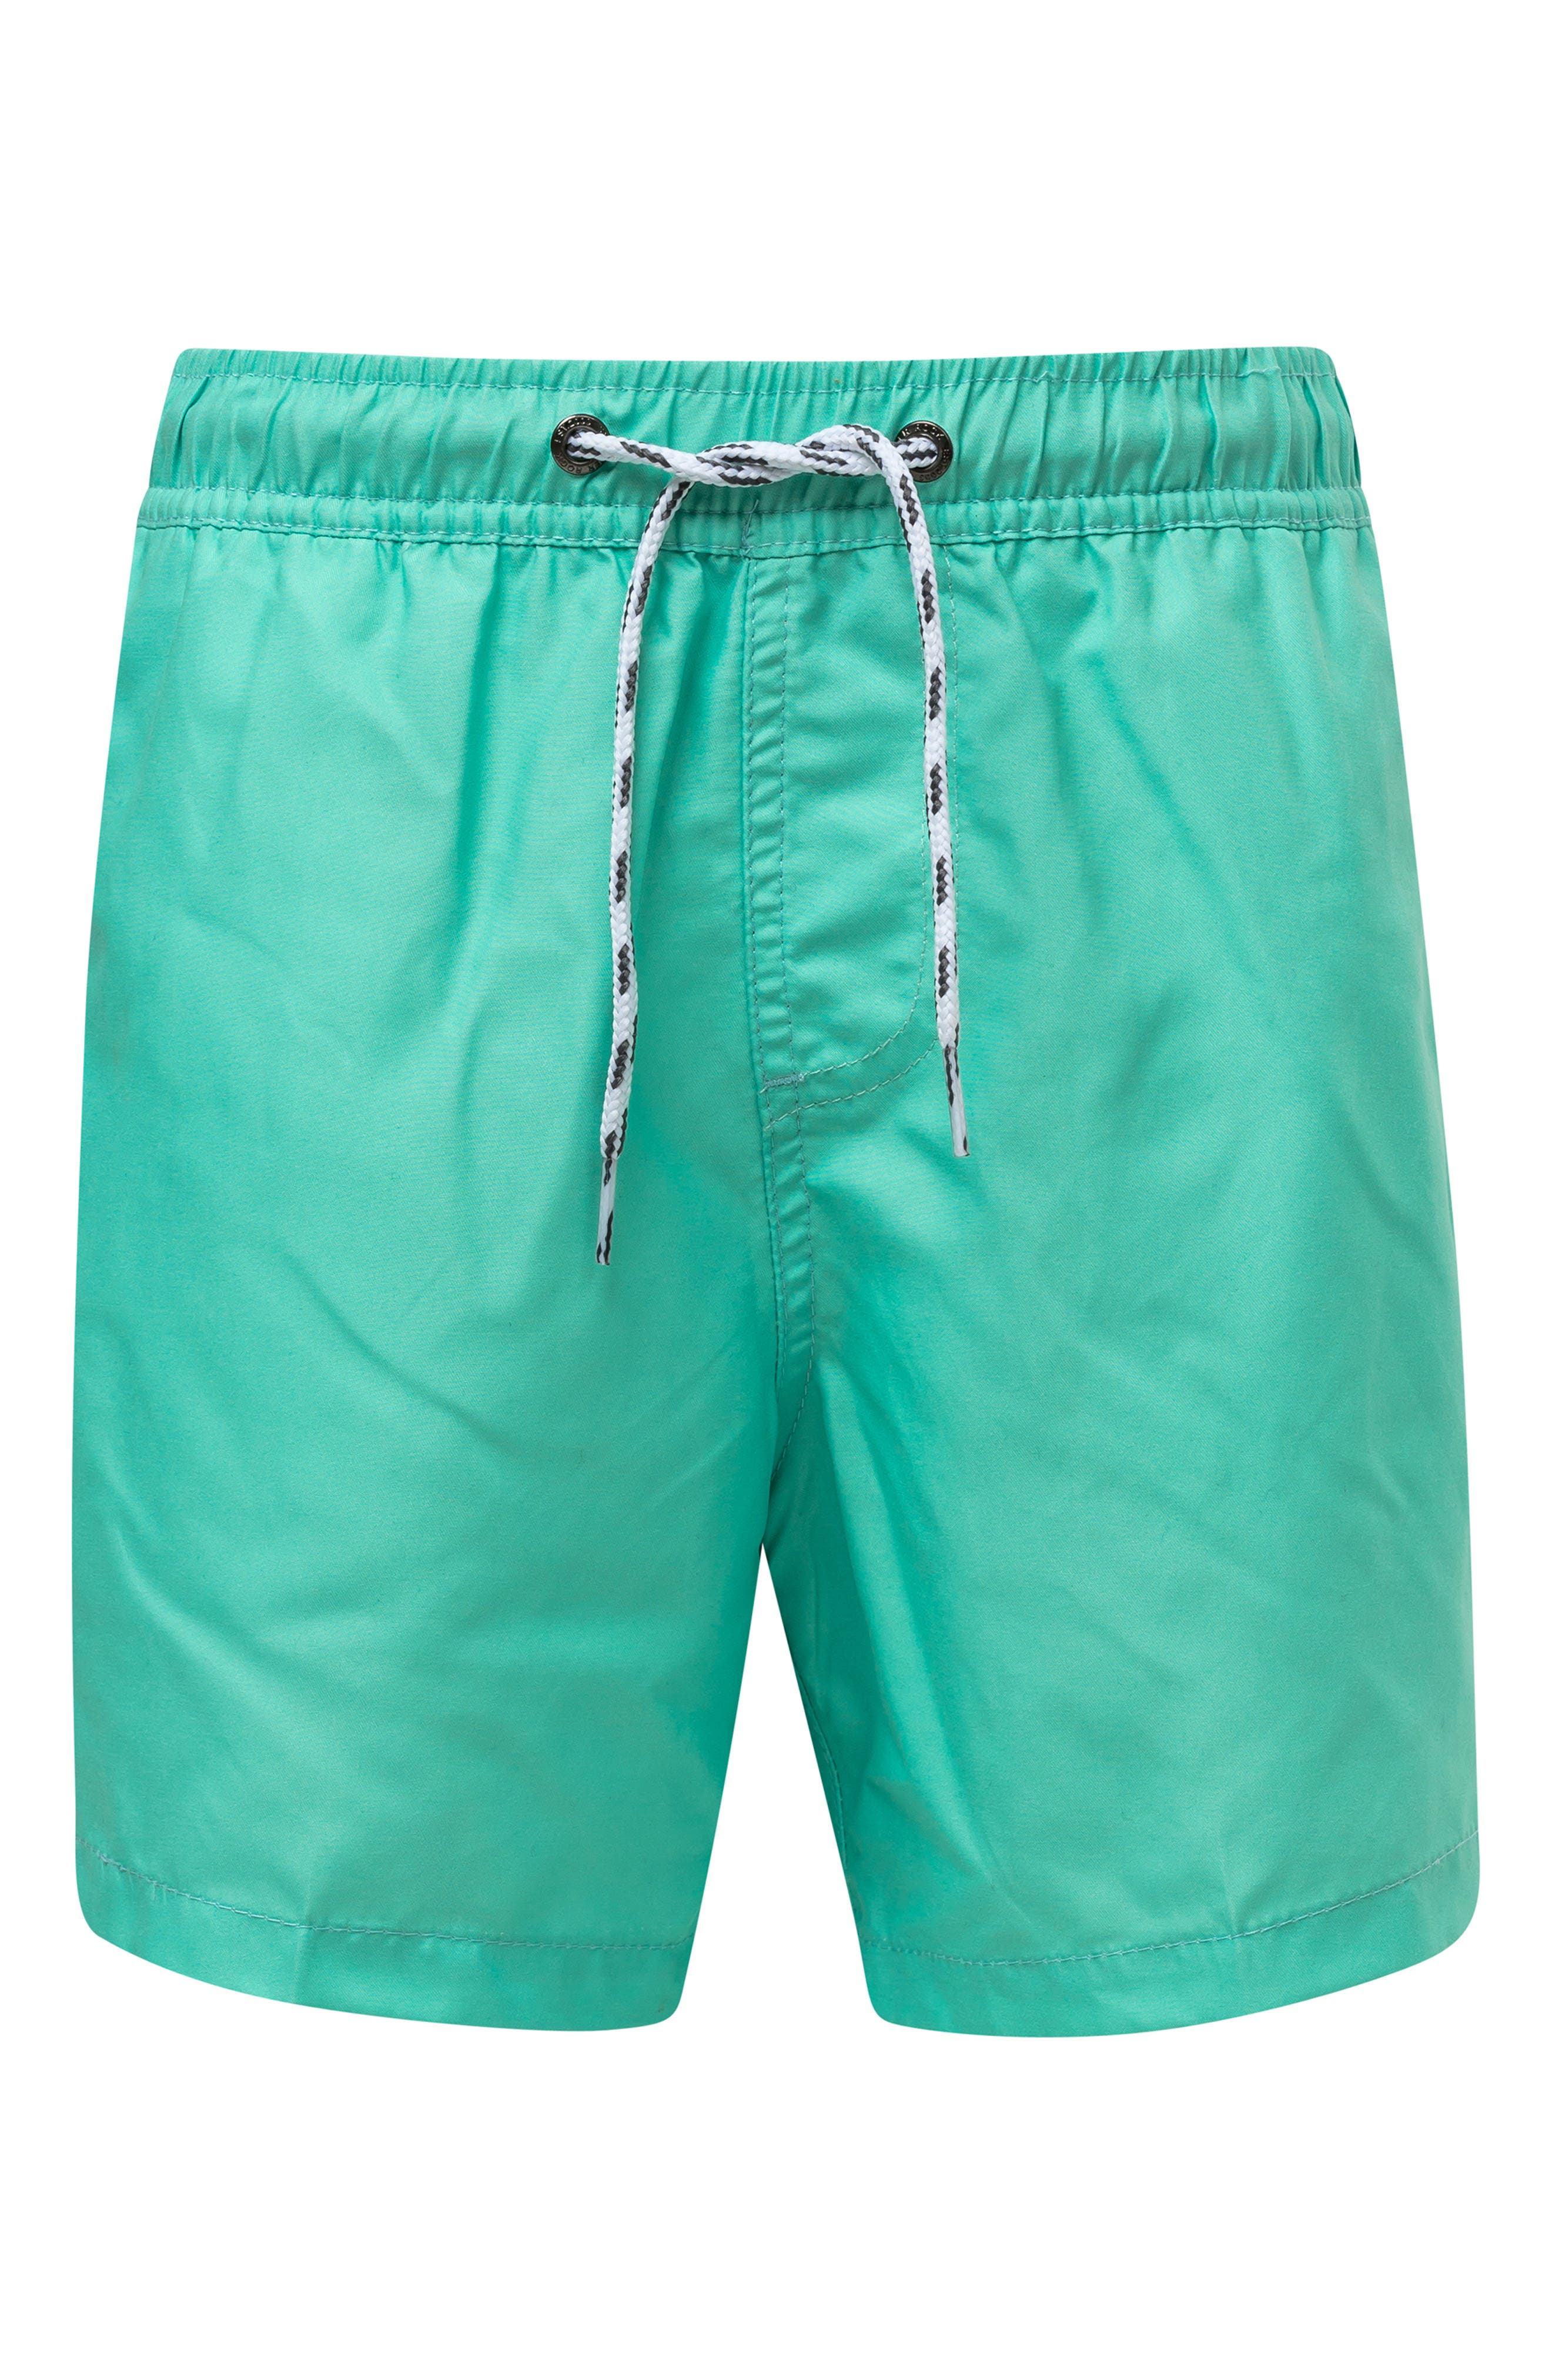 Mint Hybrid Board Shorts,                             Main thumbnail 1, color,                             LIGHT PASTEL GREEN